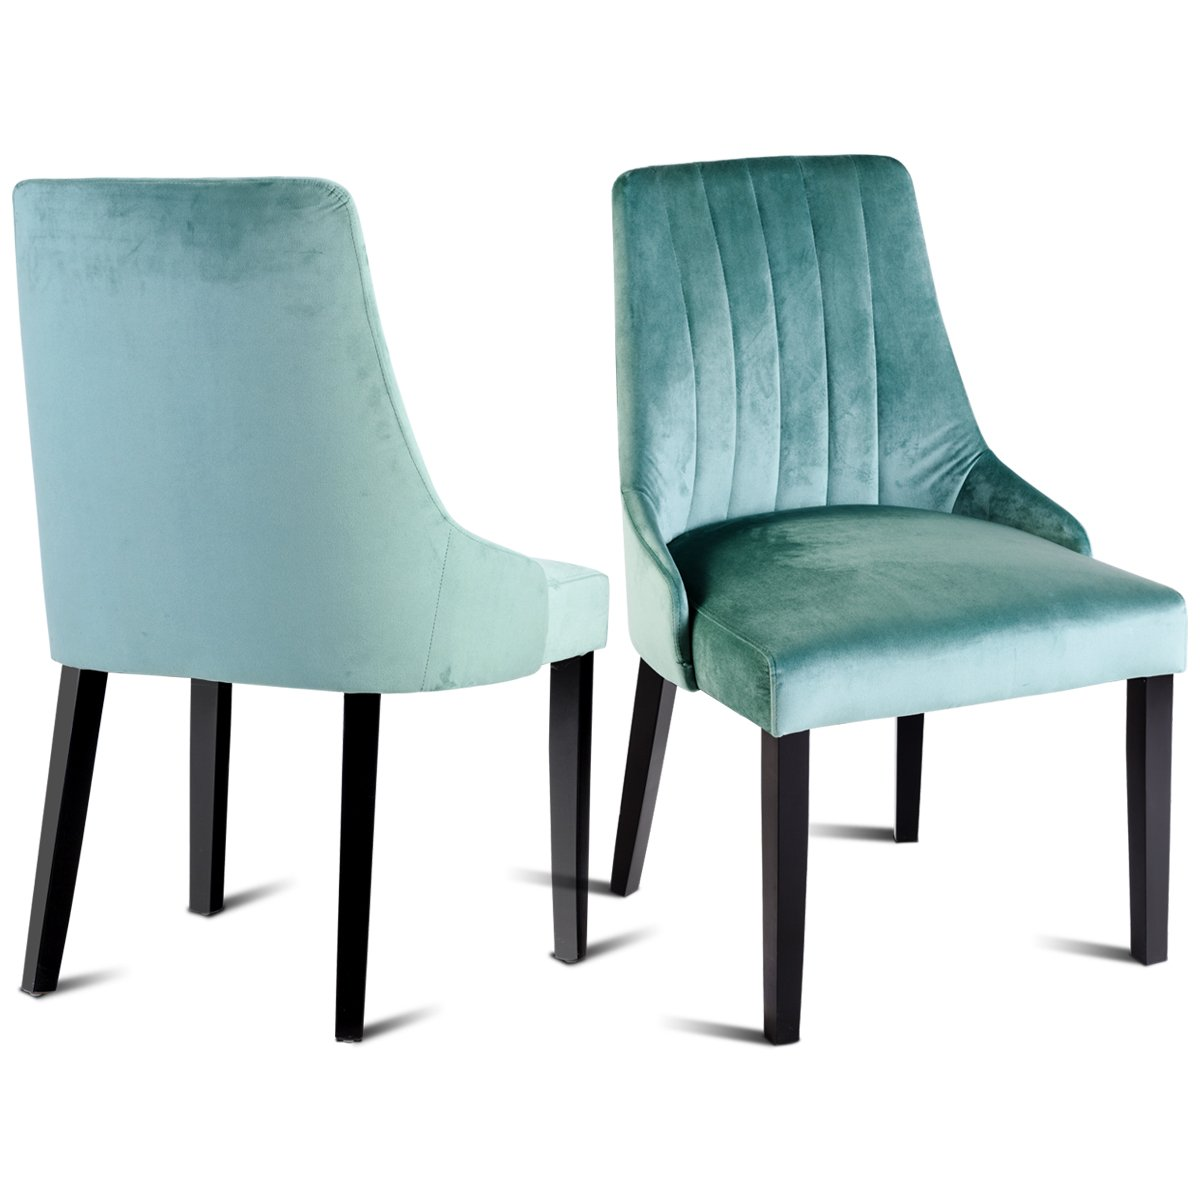 Giantex 2 PCS Velvet Dining Room Chair Set Upholstered Fabric Solid Wood  Structure Thick Padded Cushion Modern Style Back Home Kitchen Living Room  Furniture ...